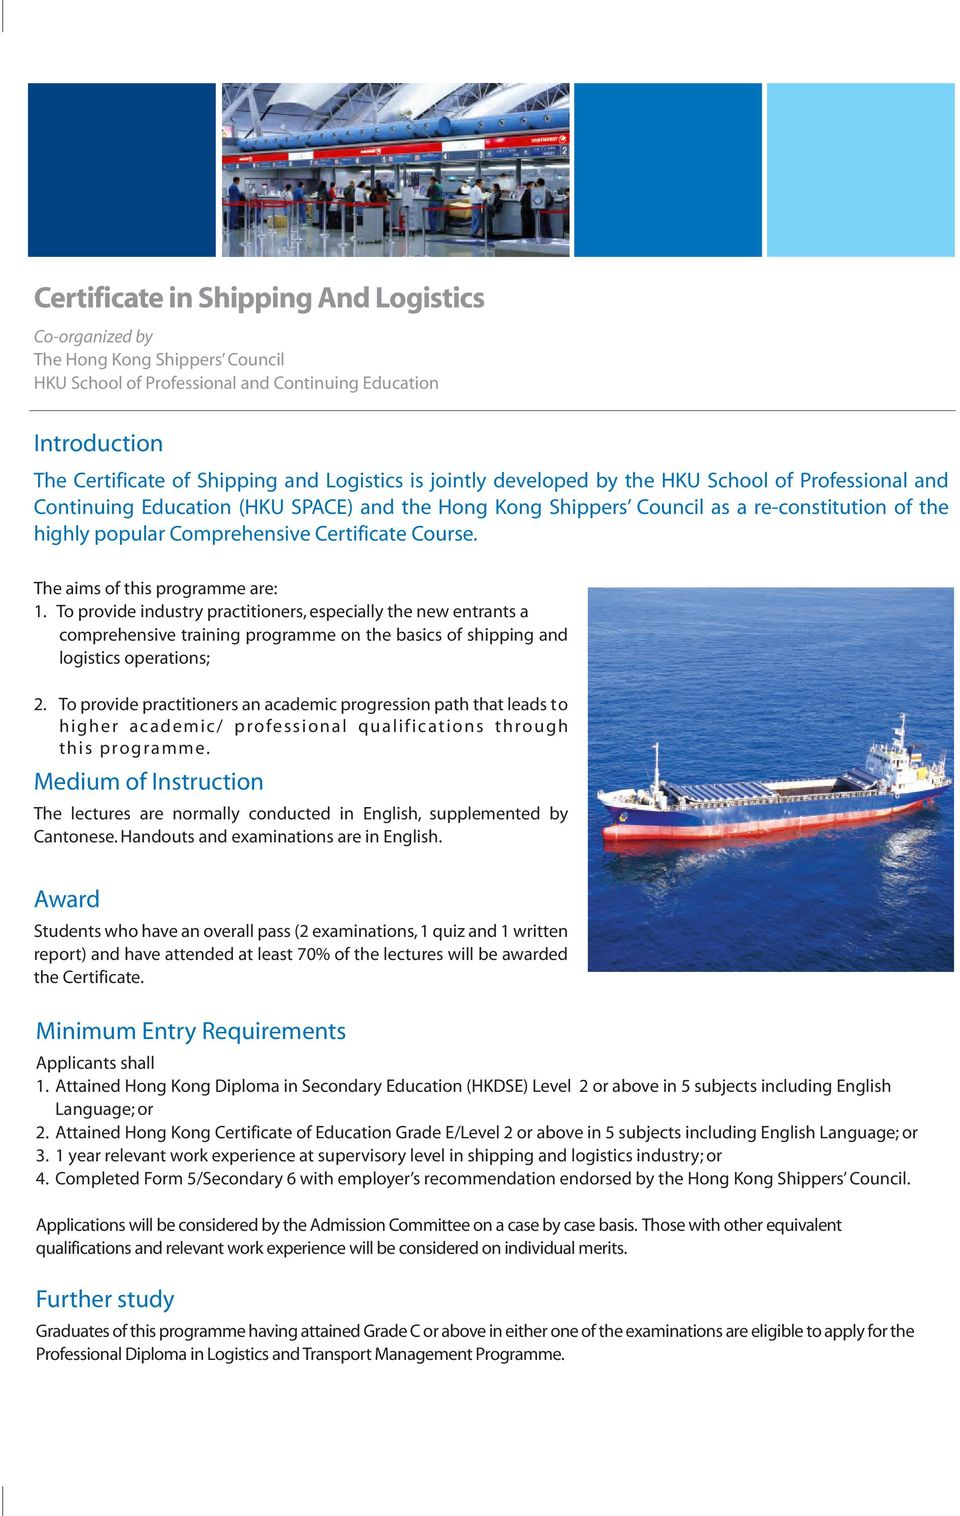 The aims of this programme are: 1. To provide industry practitioners, especially the new entrants a comprehensive training programme on the basics of shipping and logistics operations; 2.